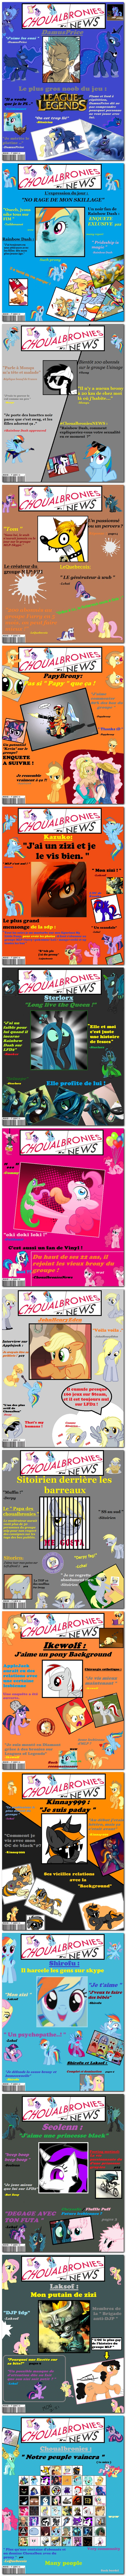 ChoualBroniesNews magazines